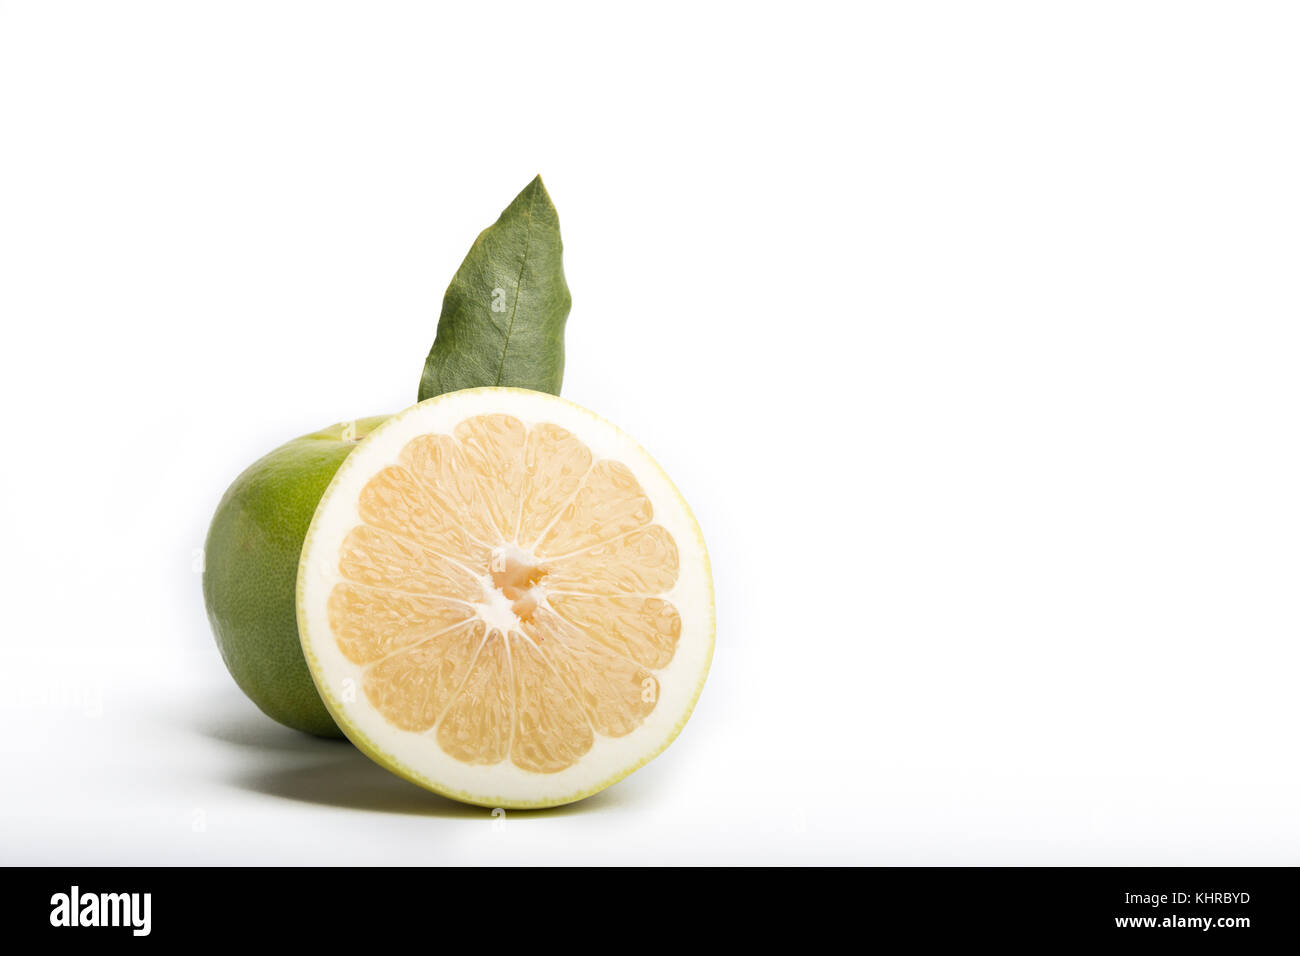 sweetie grapefruit isolated on a white background - Stock Image